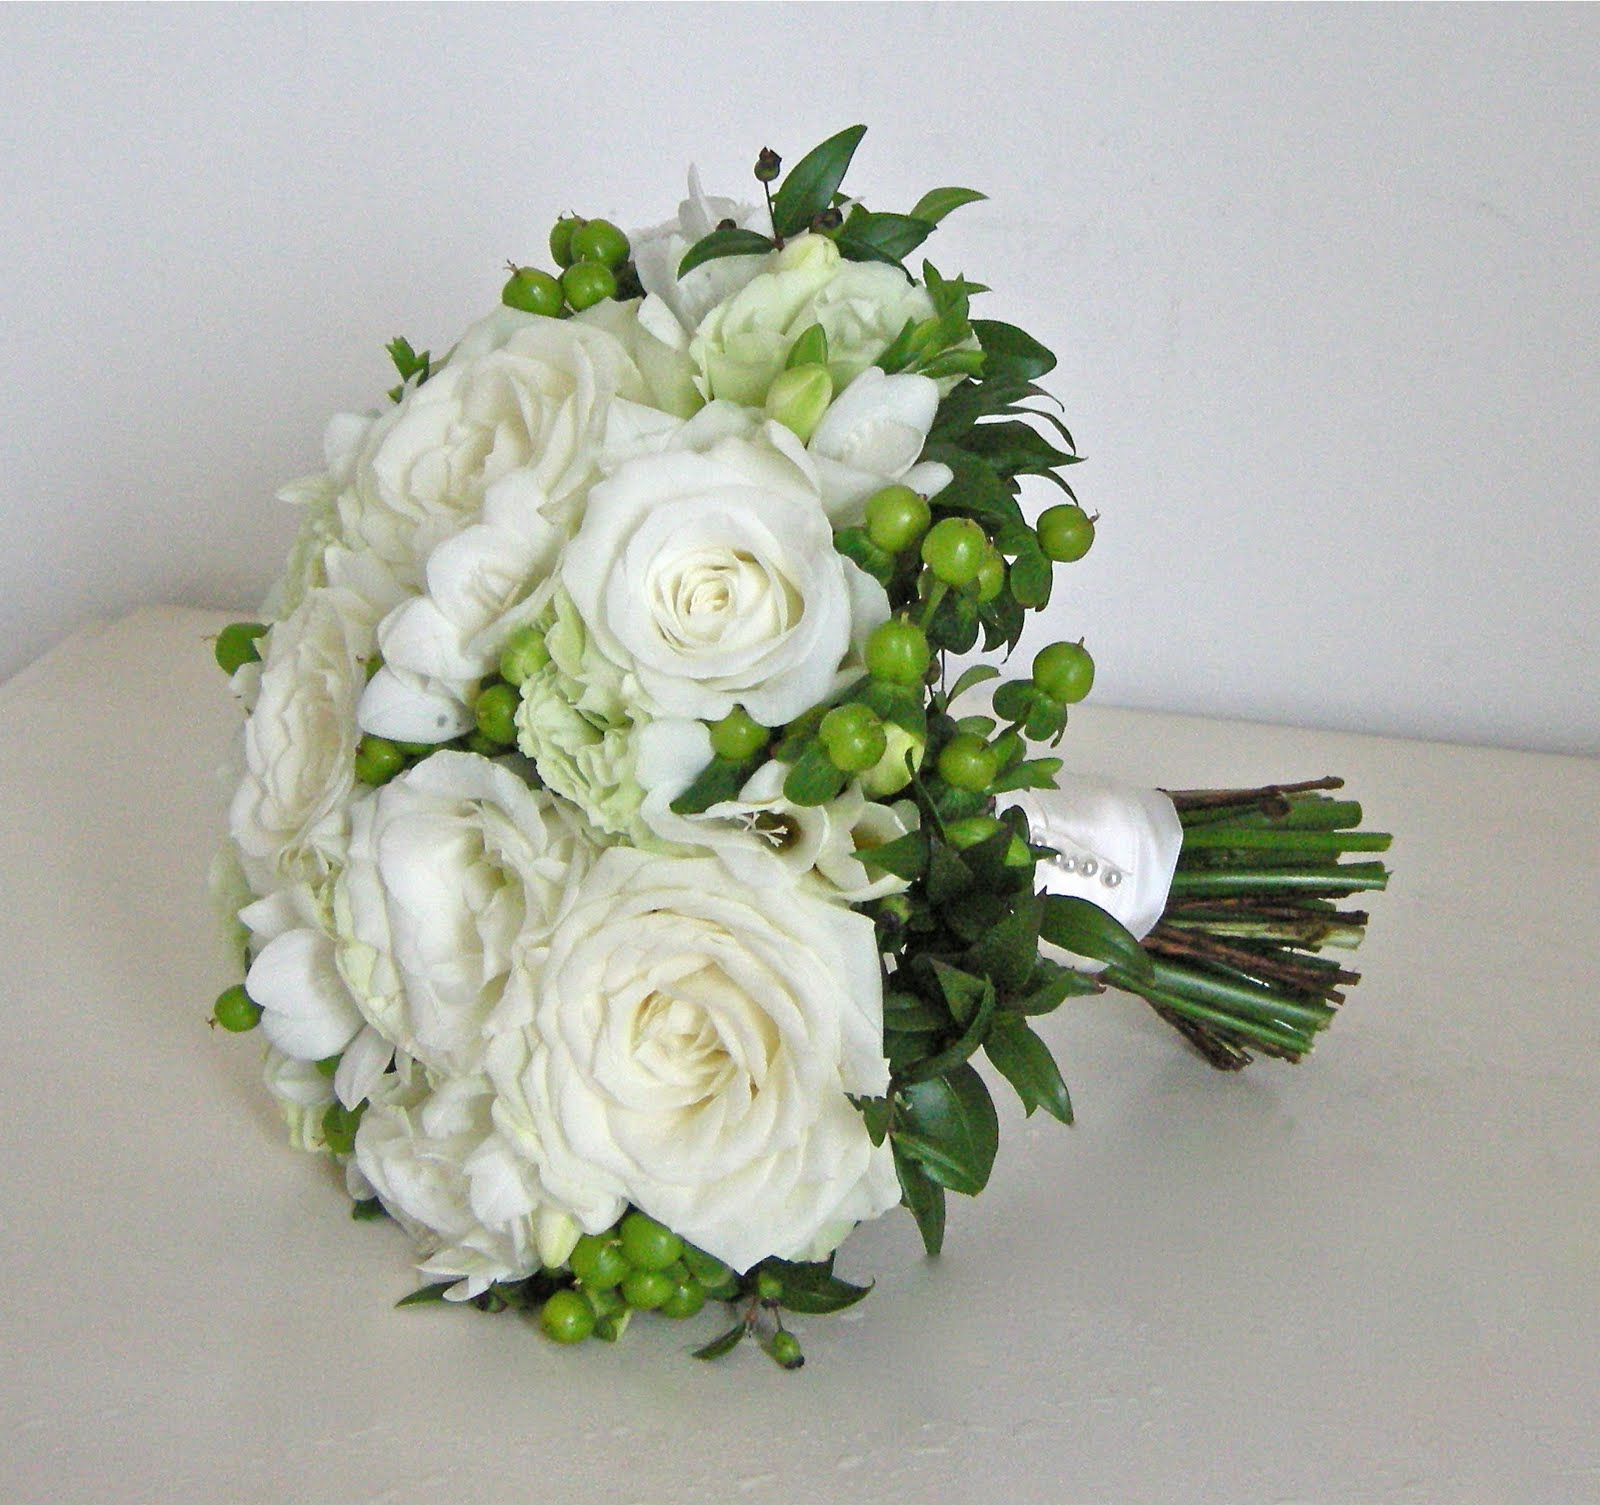 Wedding Flowers Blog Holly 39 S Classic Green And White Wedding Flowers Rhi